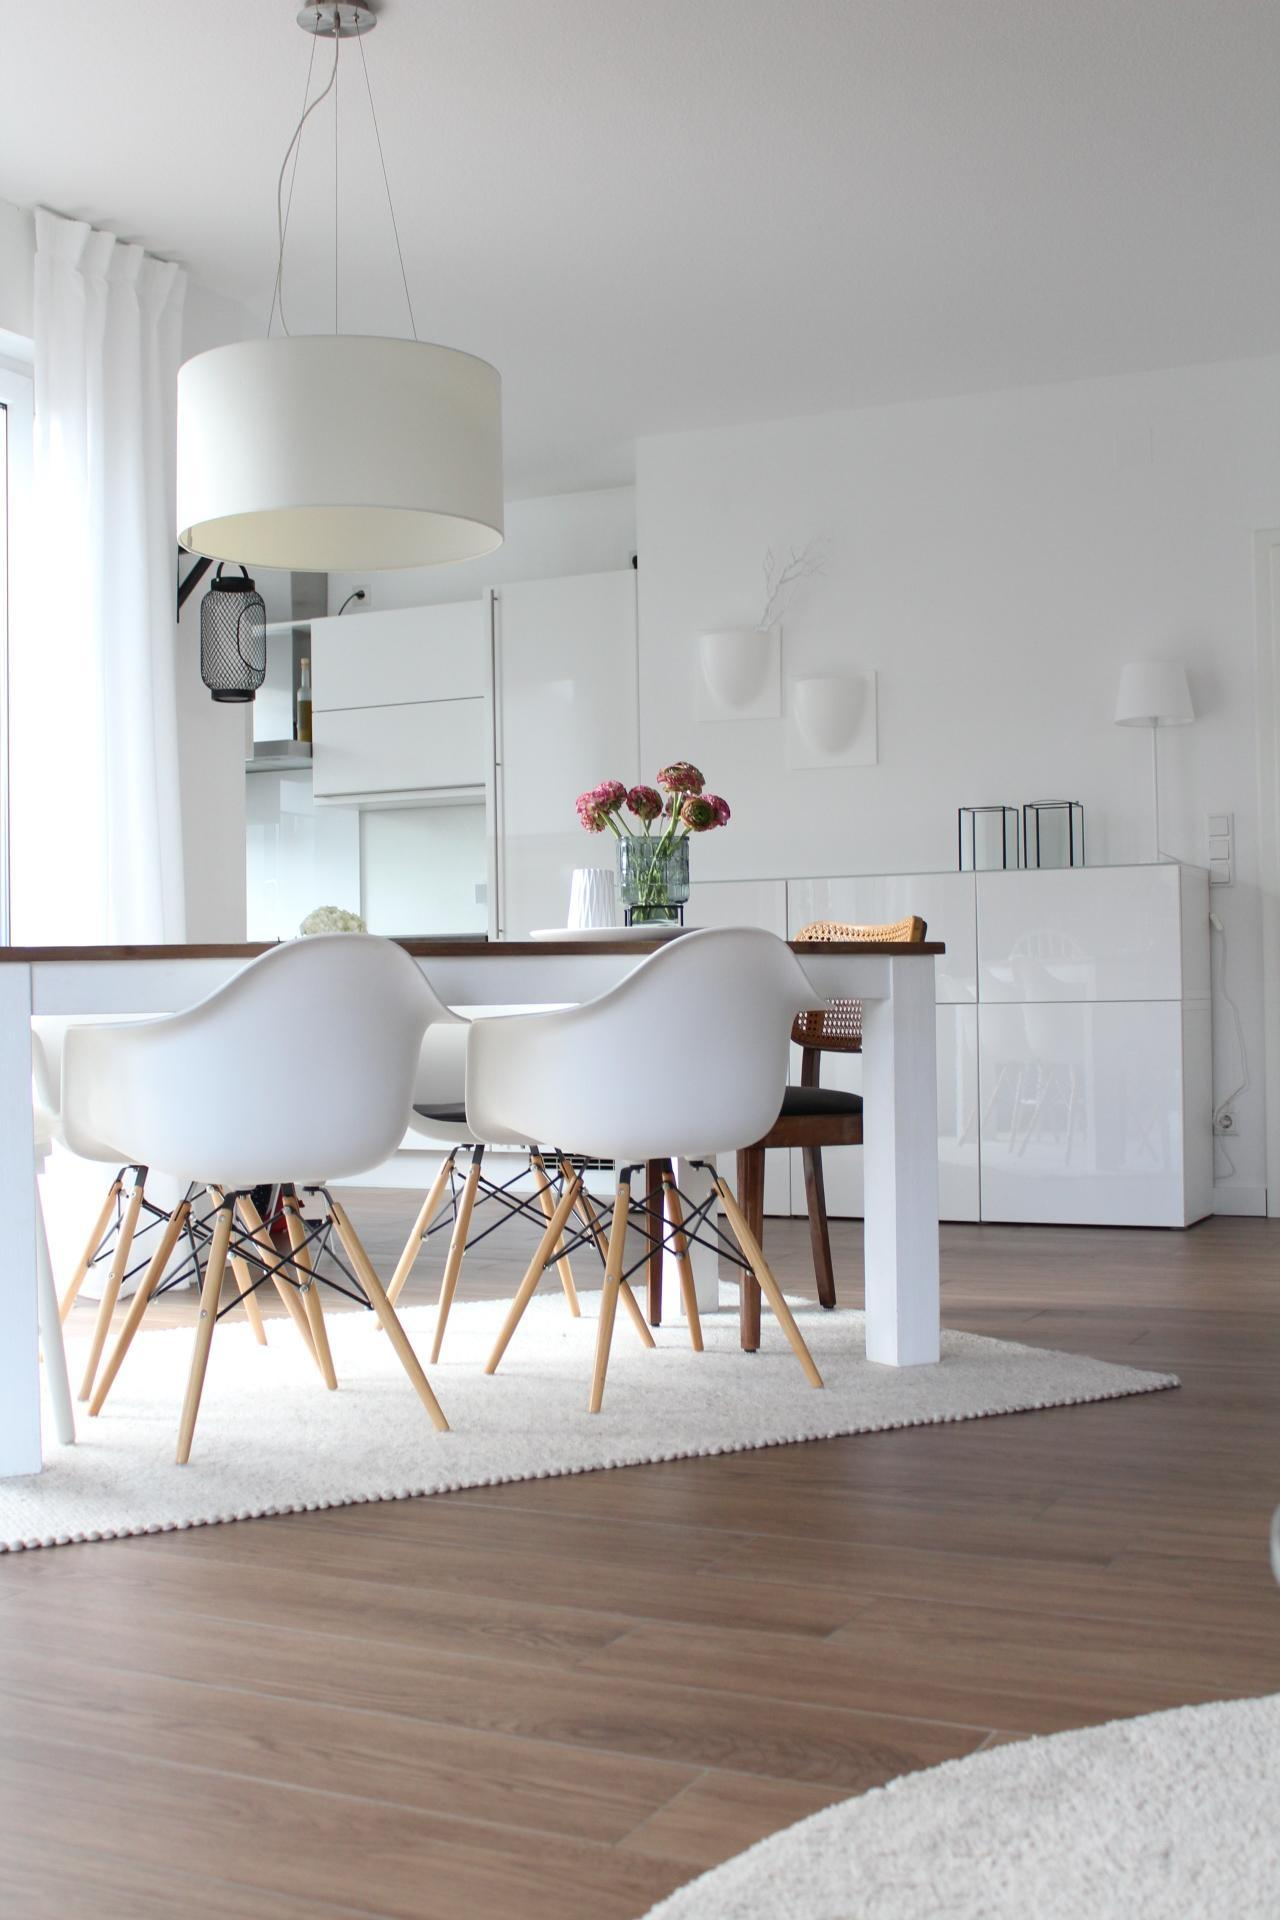 Addicted #whiteliving #wohneninweiss #scandi #whiteinterior